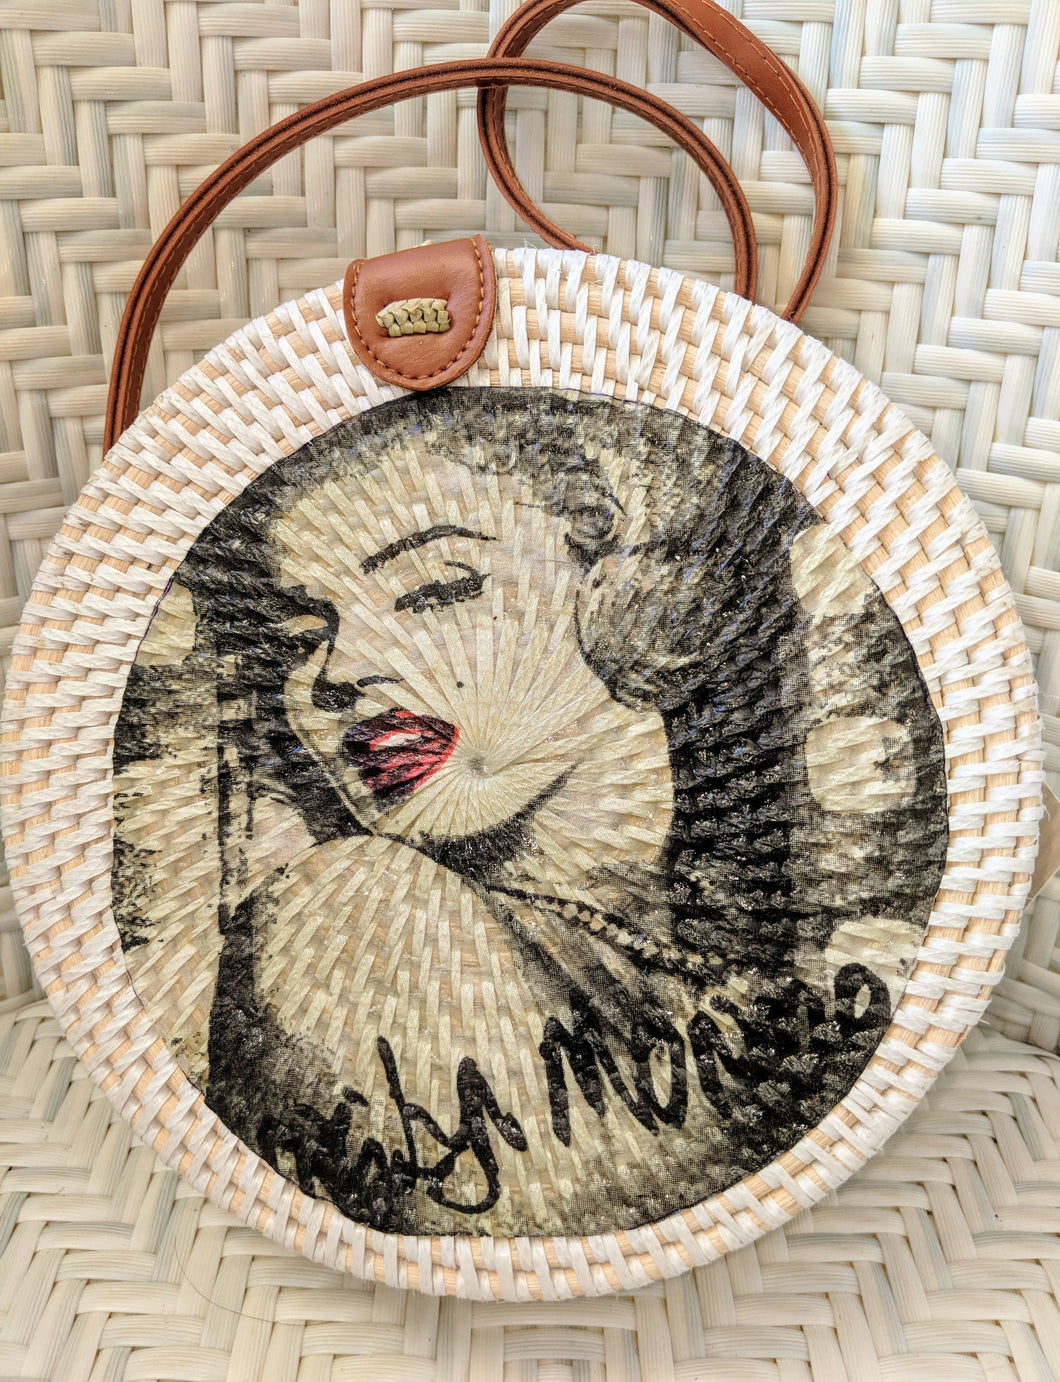 Handmade Rattan Bag with Marilyn Munroe  Decoupage - Curvique Vintage